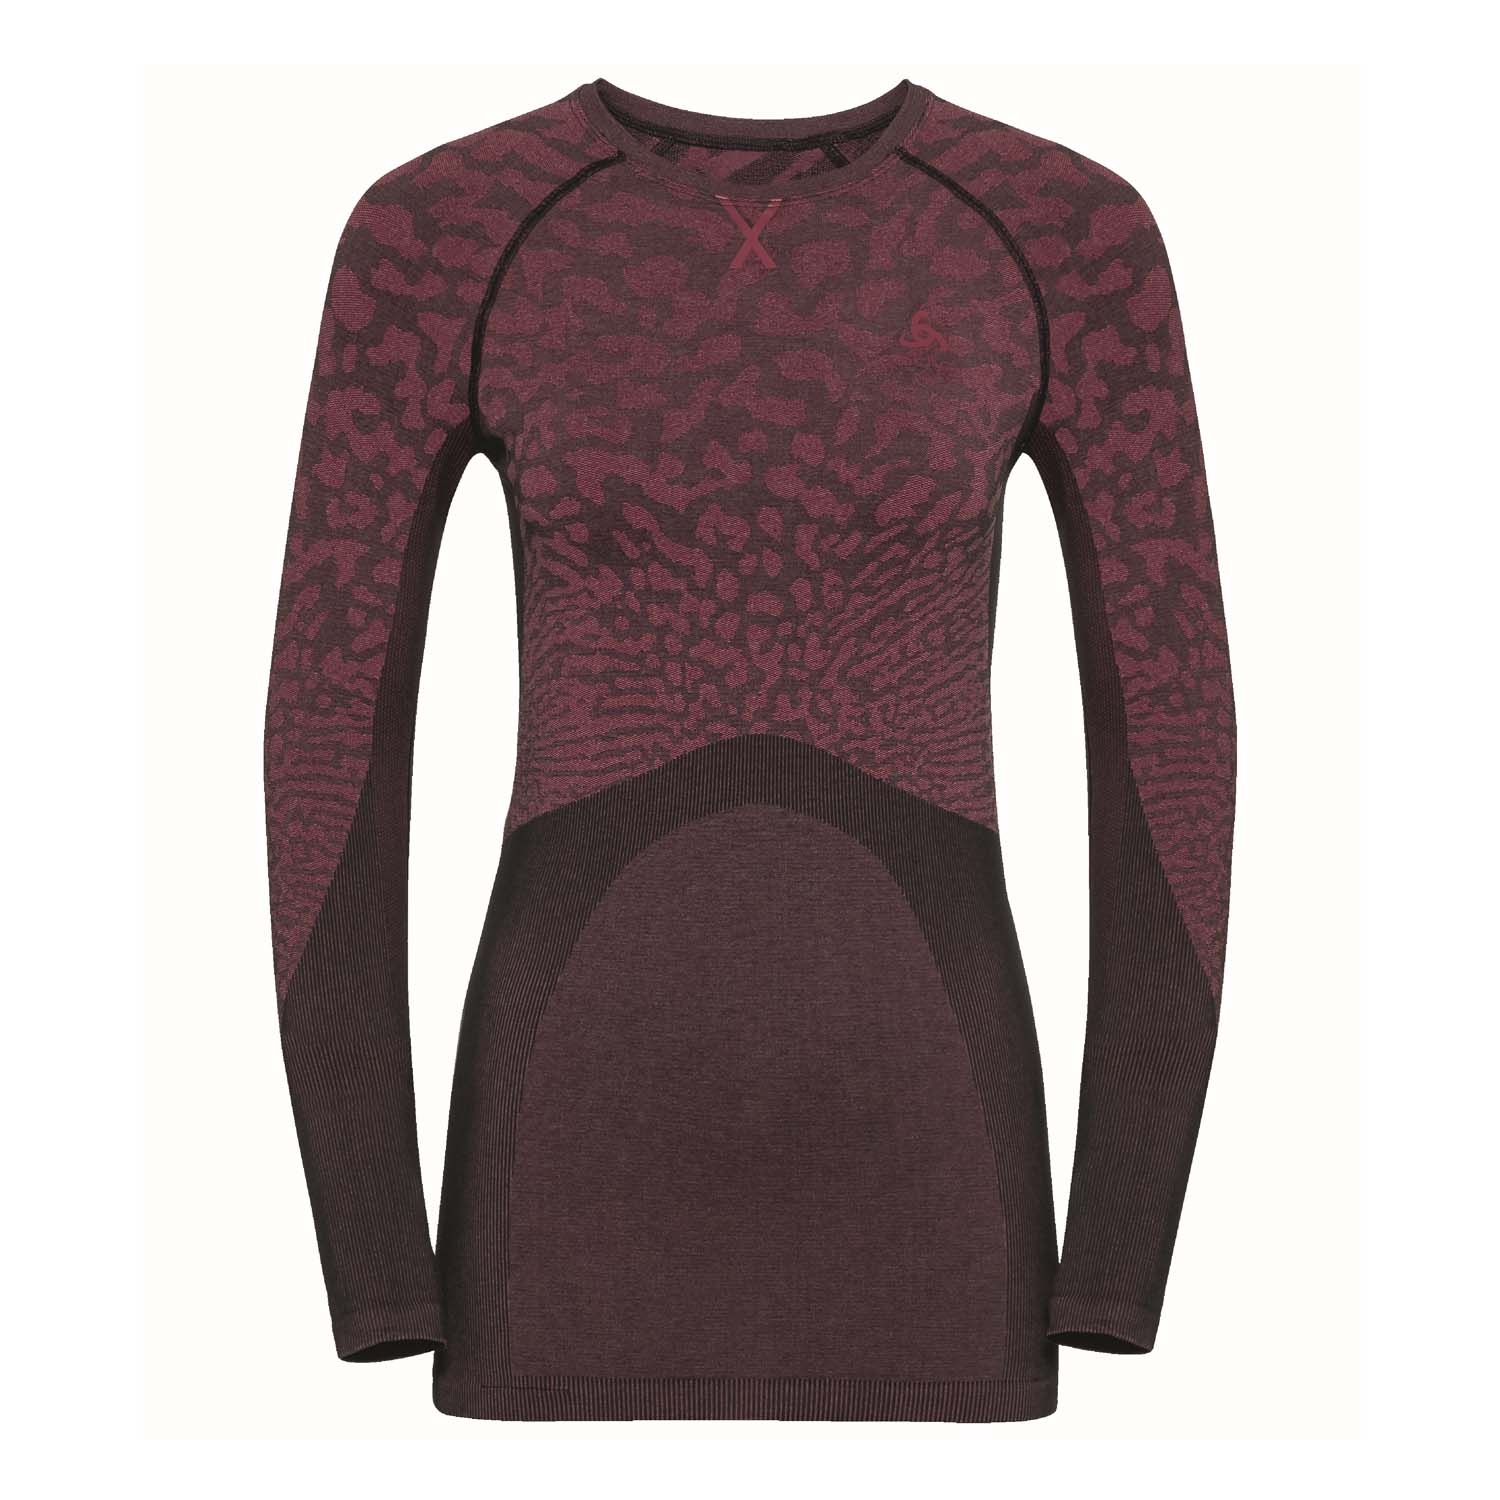 Odlo Performance Blackcomb Long Sleeved Crew Neck Top Black/Cerise 2020